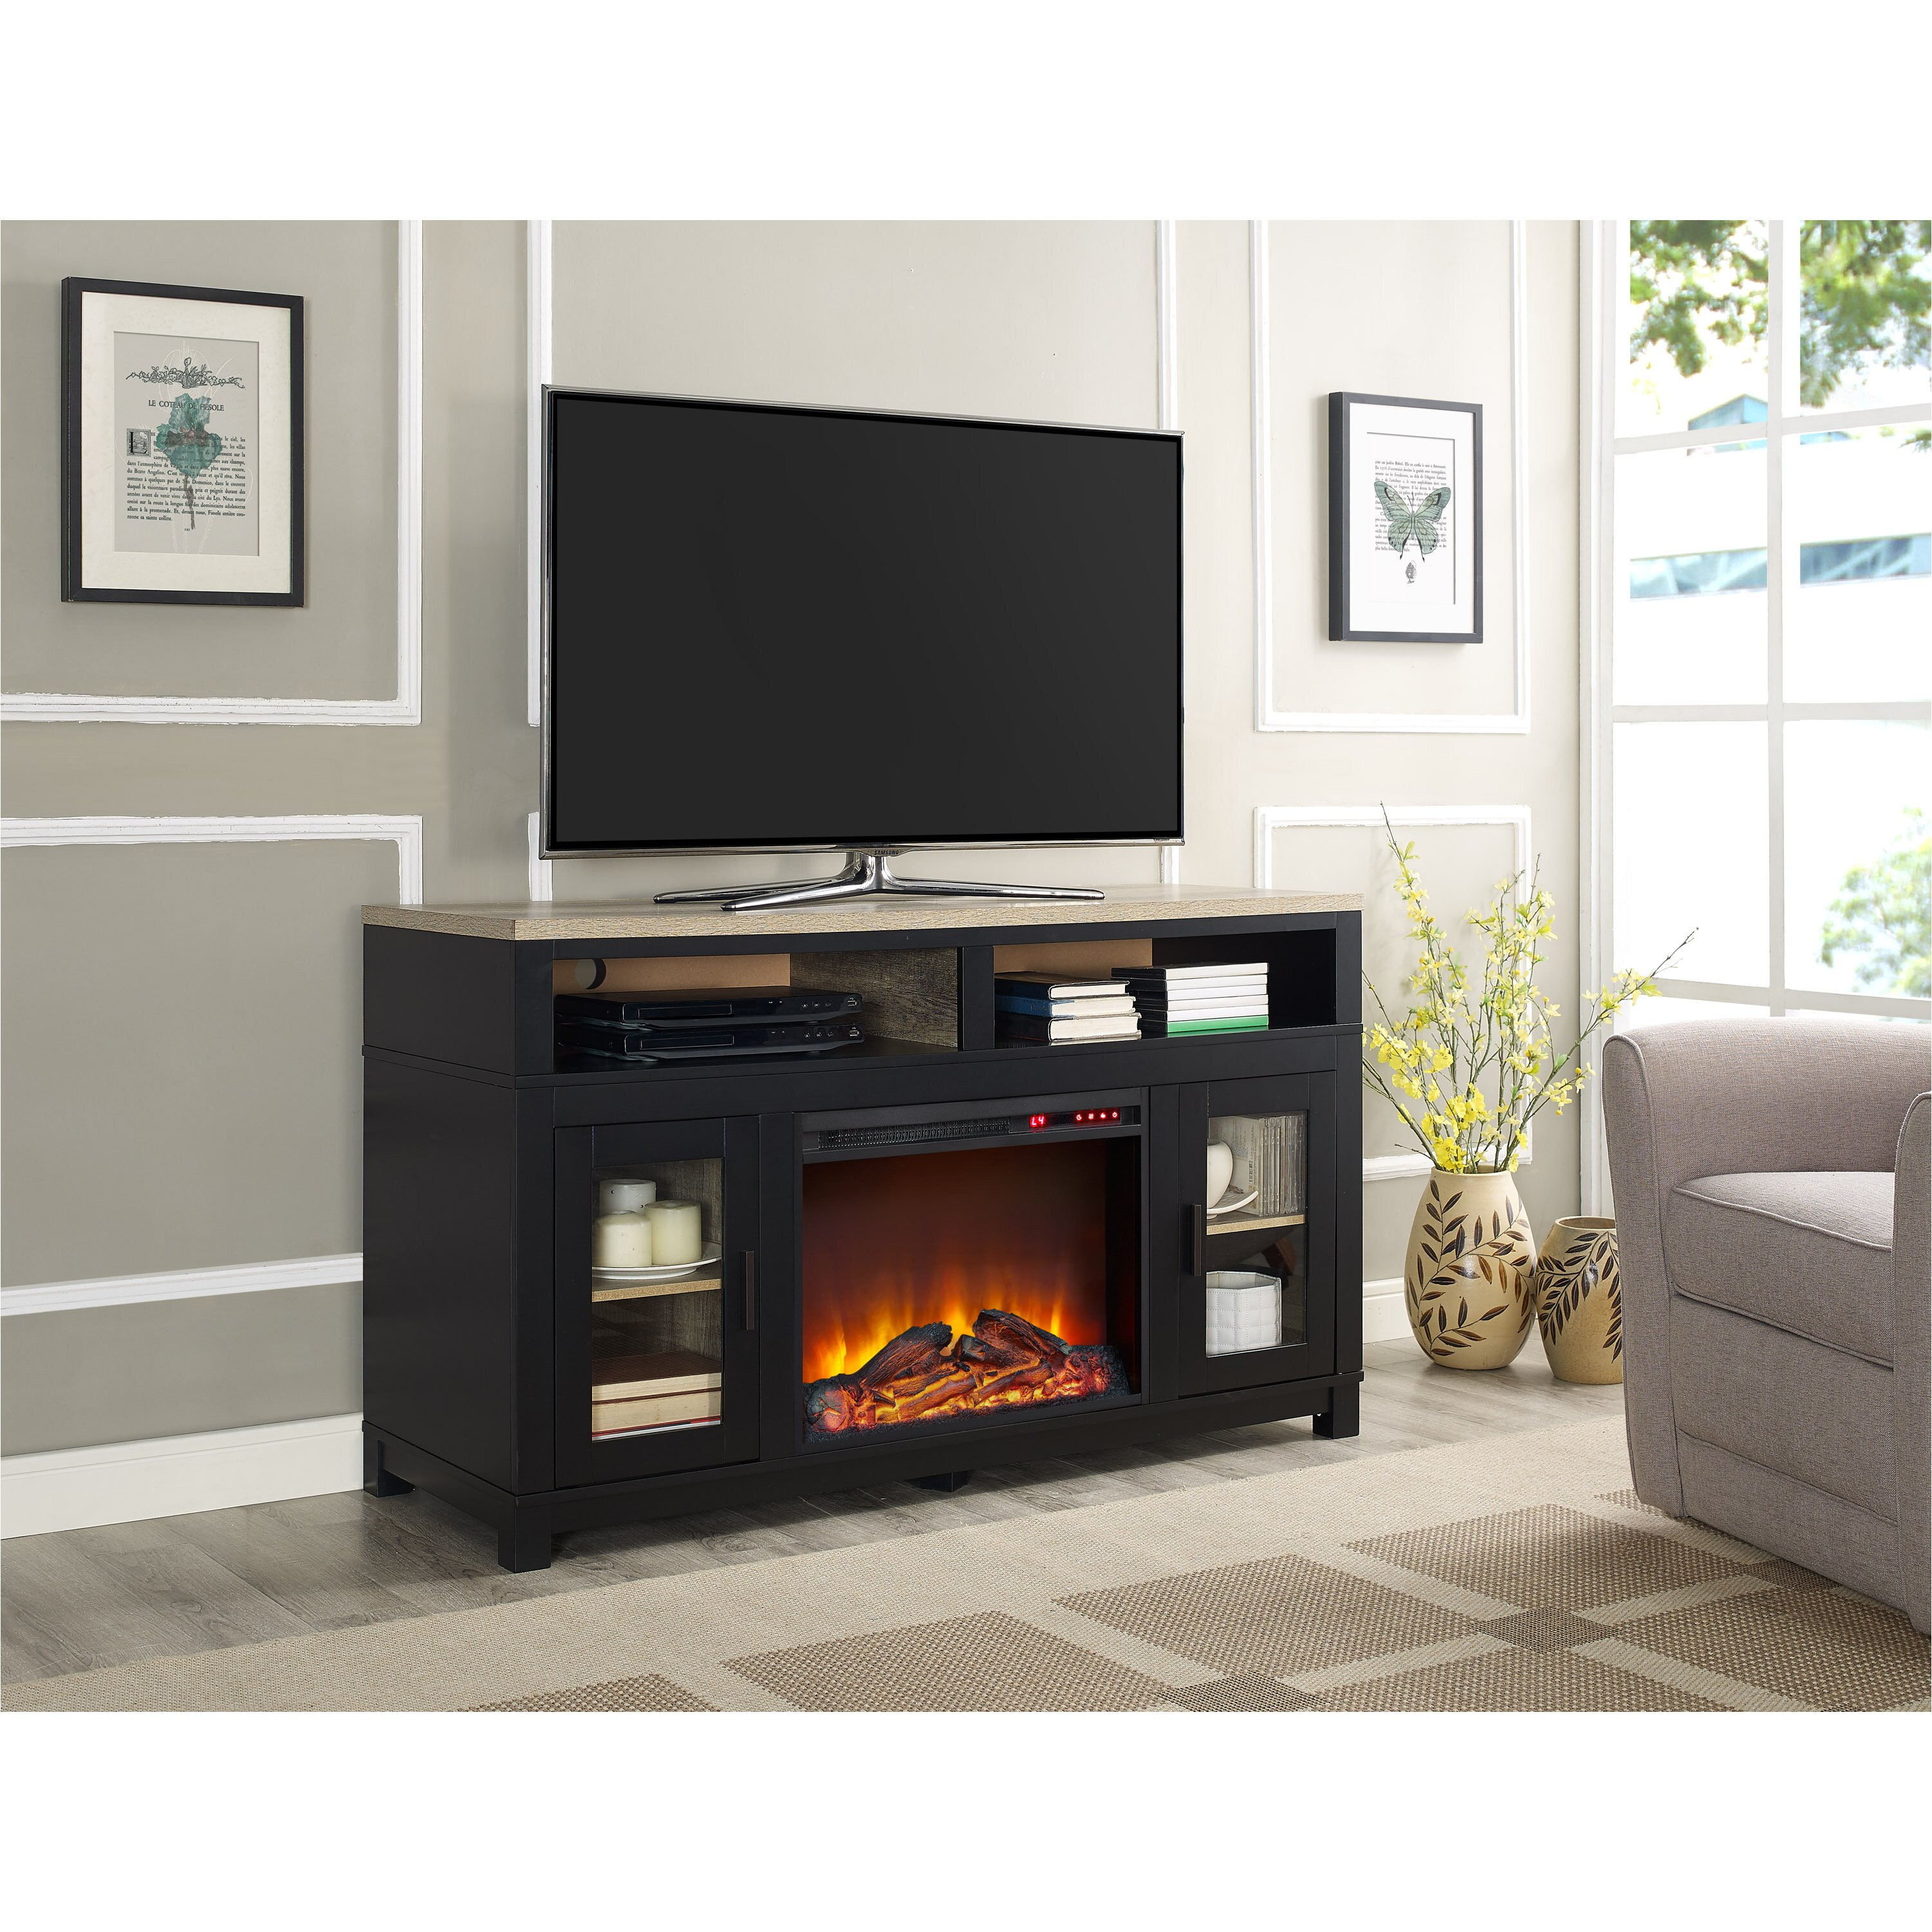 contemporary electric fireplace insert fireplace ideas